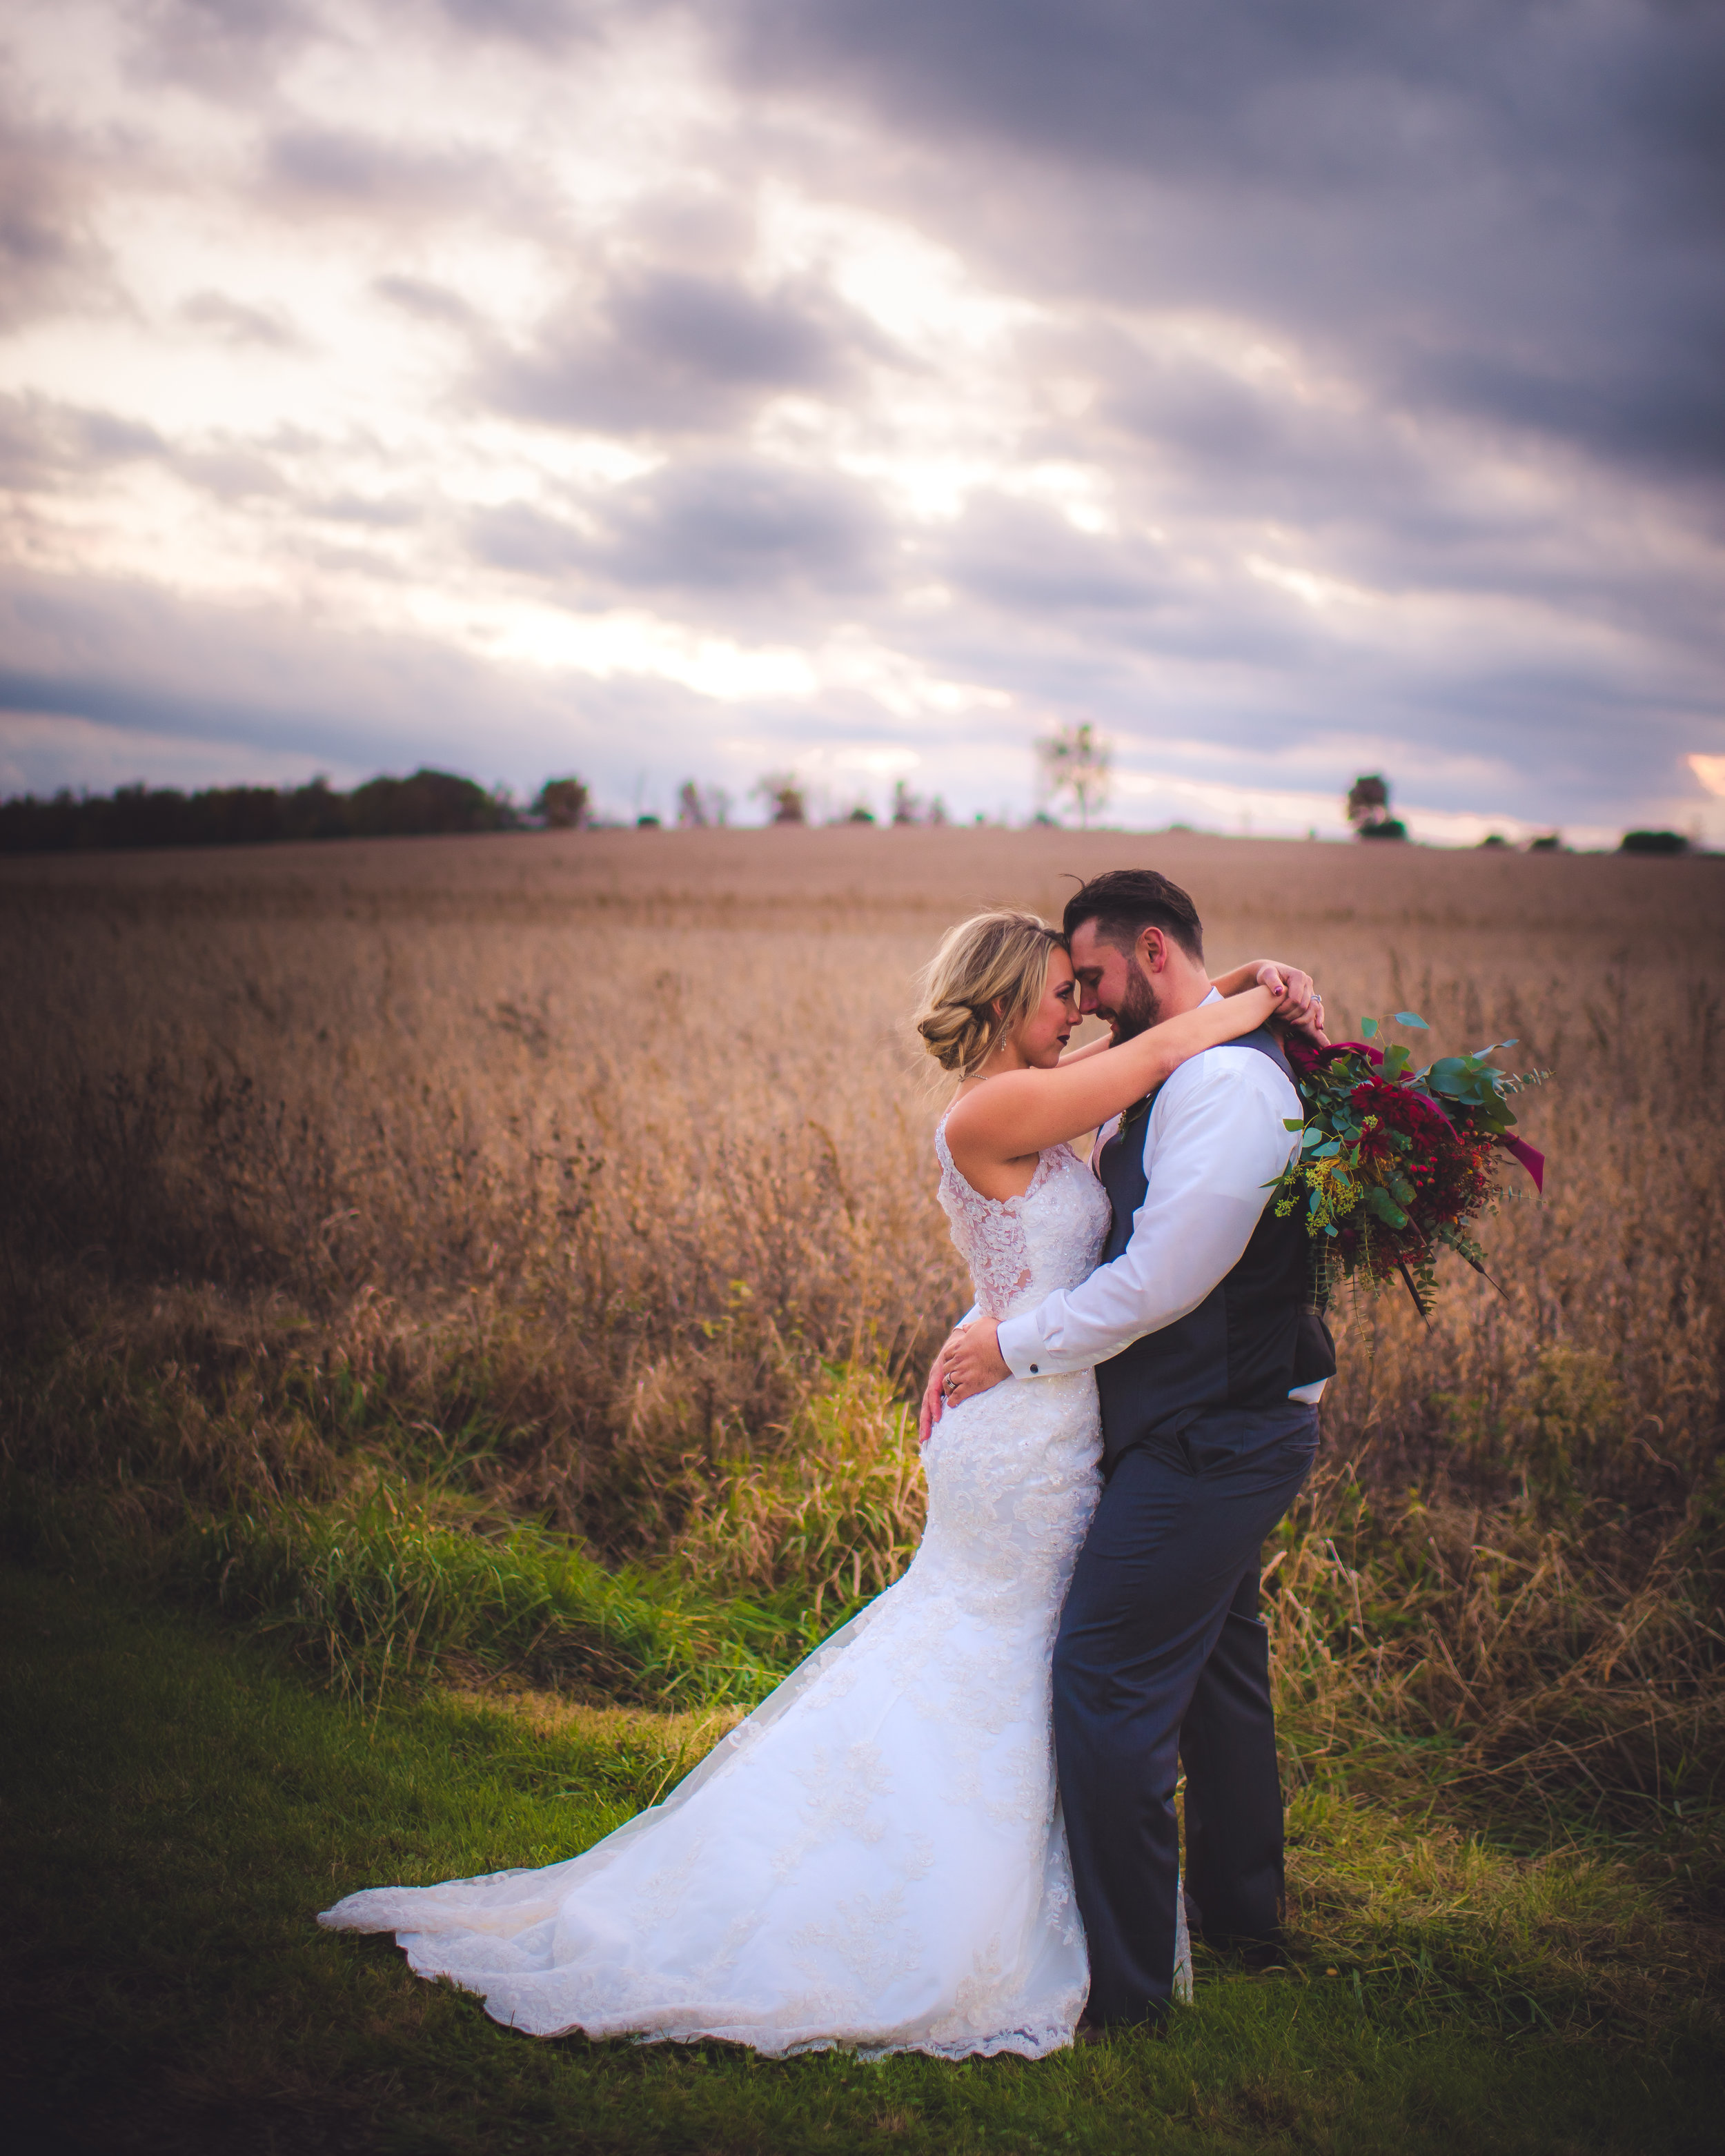 TIMELESS. INTIMATE. DOCUMENTARY. CANDID.DETAIL-ORIENTED. GENUINE. PASSIONATE. TENDER. EMOTIONAL. JOURNALISTIC. - MY WORDS TO DESCRIBE HOW YOUR WEDDING DAY LOVE STORY WILL LOOK…